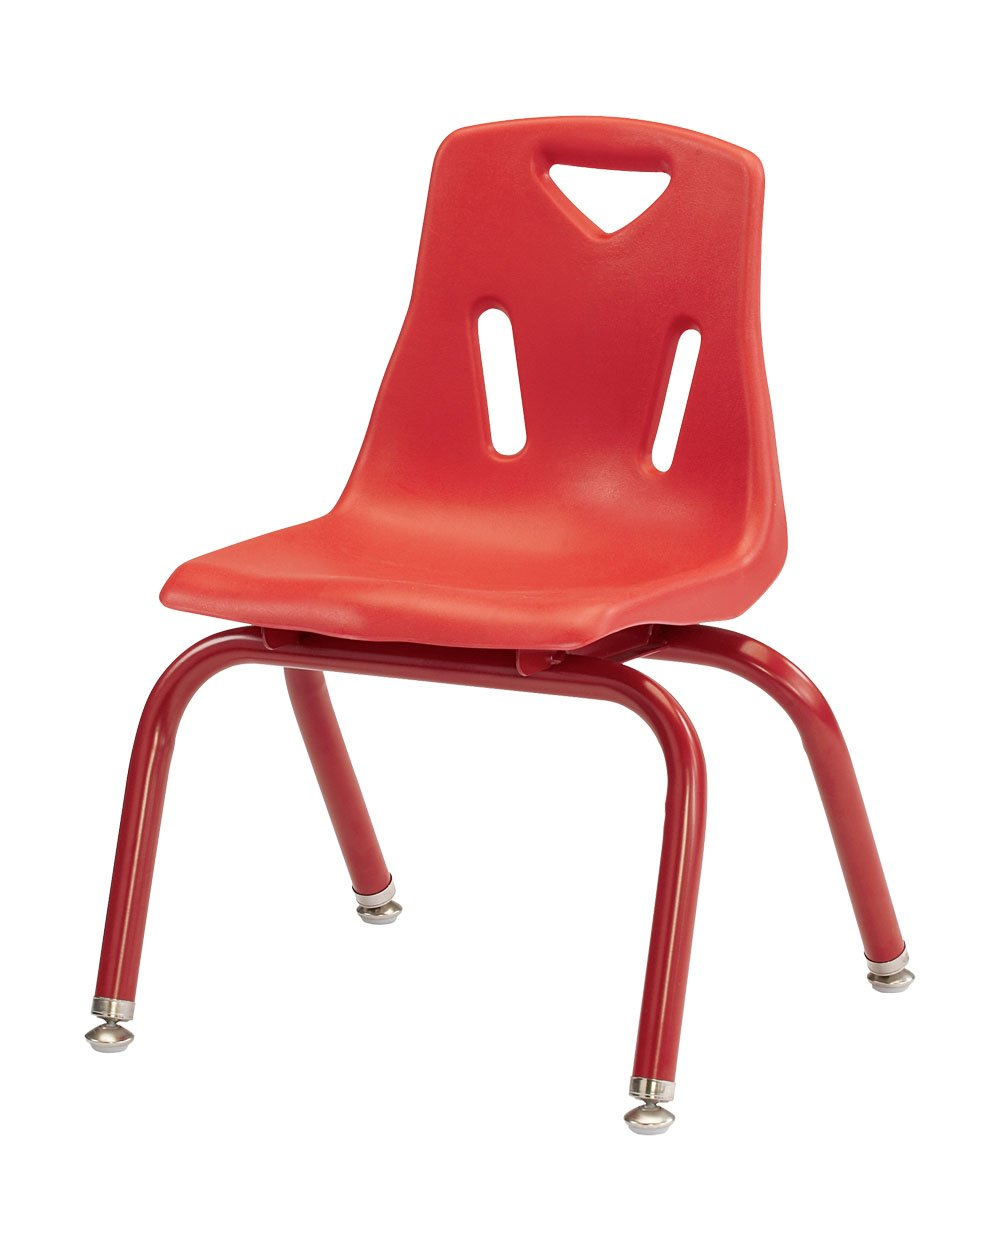 """Berries 8118JC6008 Stacking Chairs with Powder-Coated Legs, 8"""" Ht, 15.5"""" Height, 17.5"""" Wide, 16.5"""" Length, Red (Pack of 6)"""